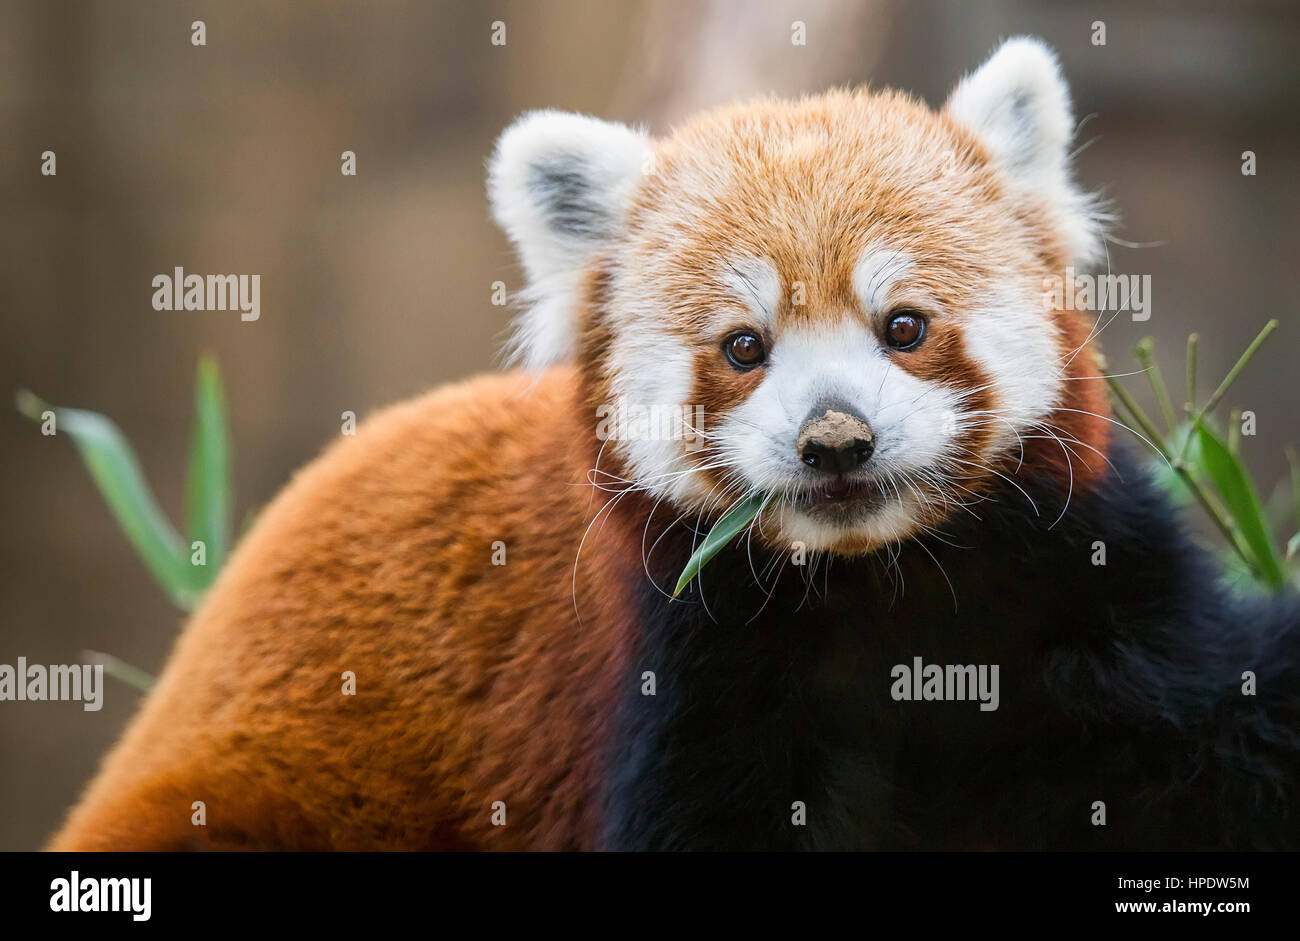 A feeding red panda (Ailurus fulgens) pauses his meal to look at the camera. - Stock Image